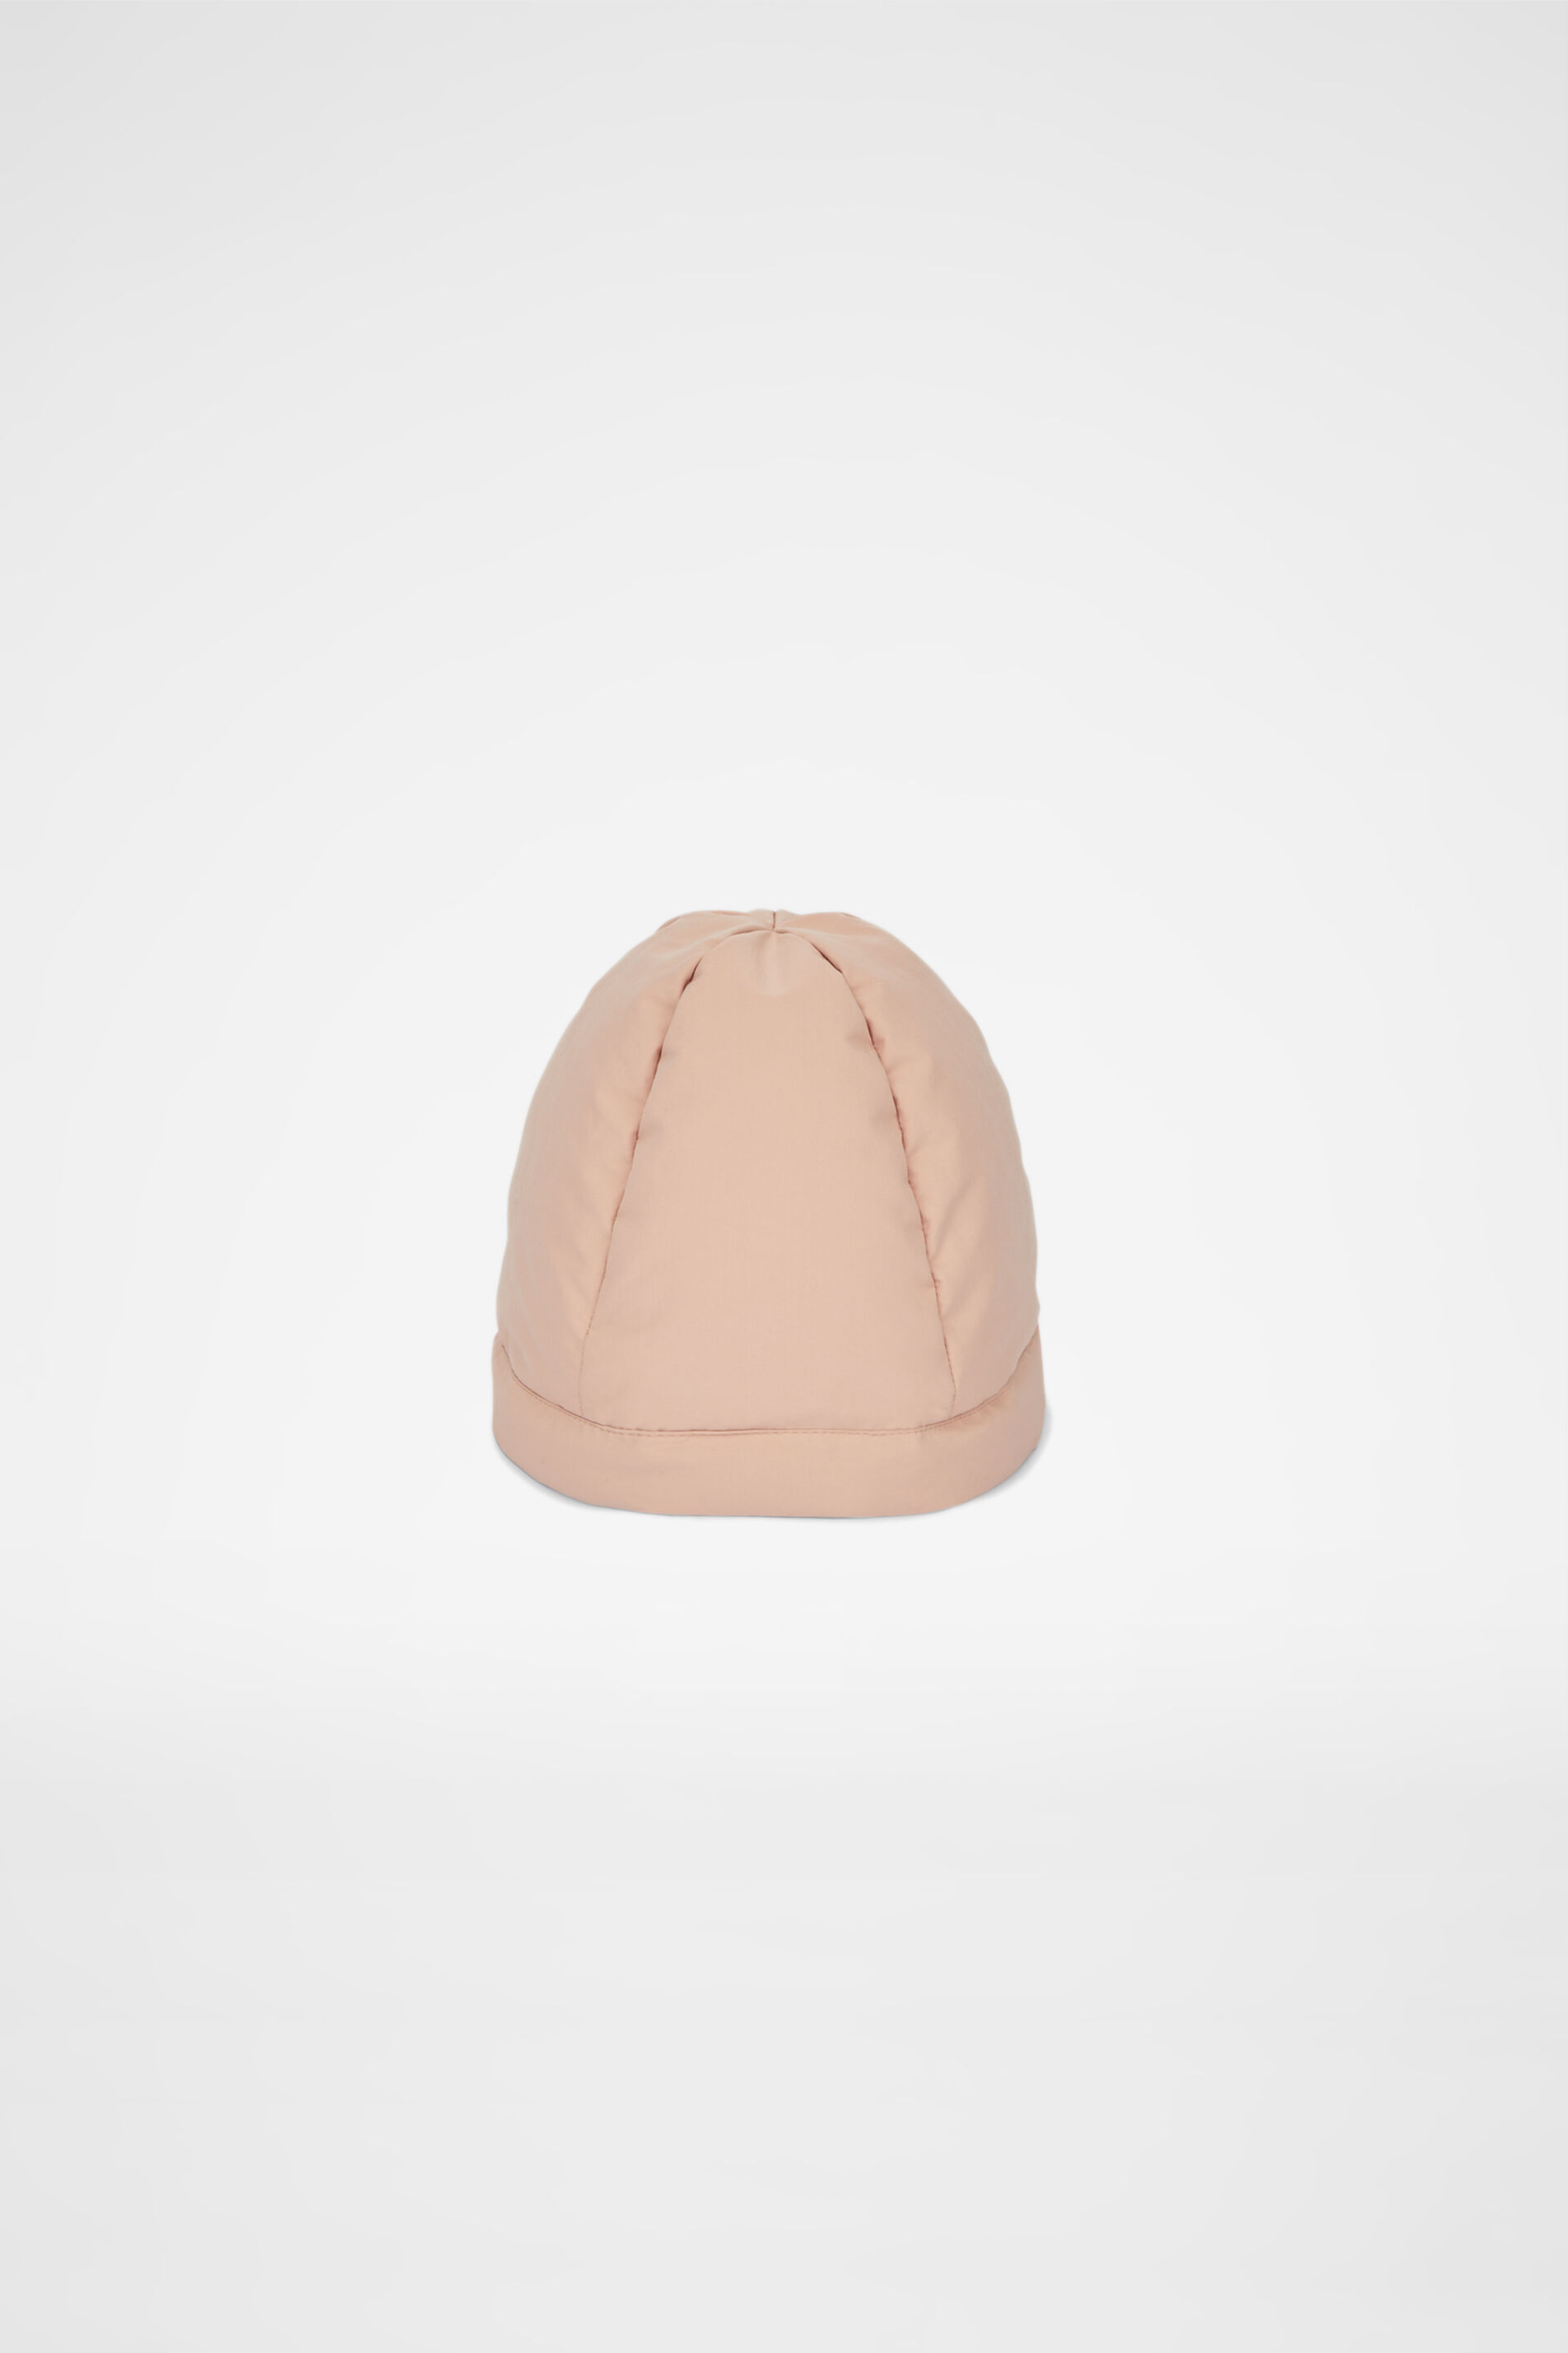 Down Hat, pink, large